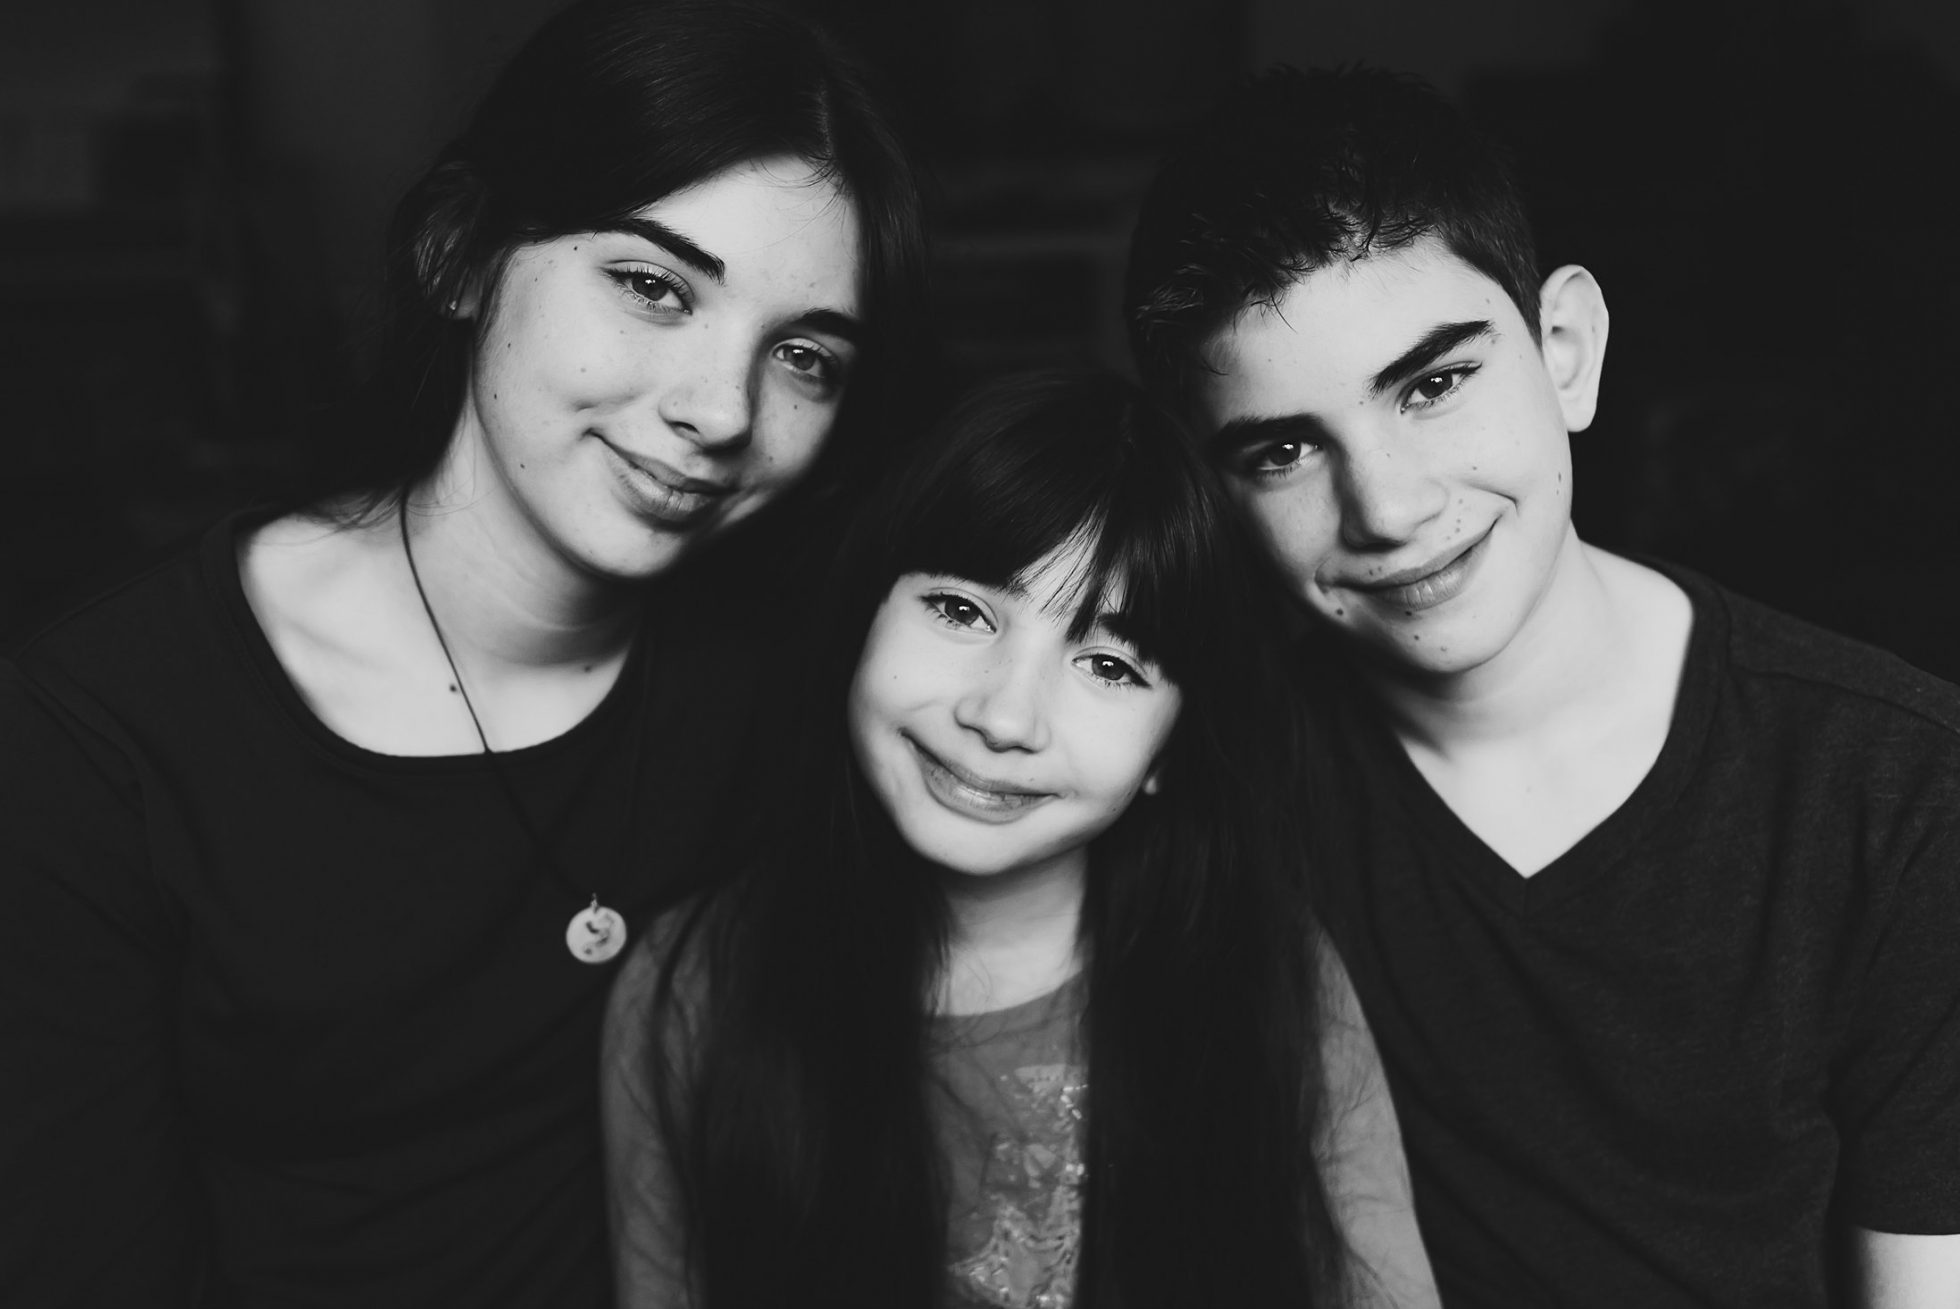 Three children looking at camera in black and white